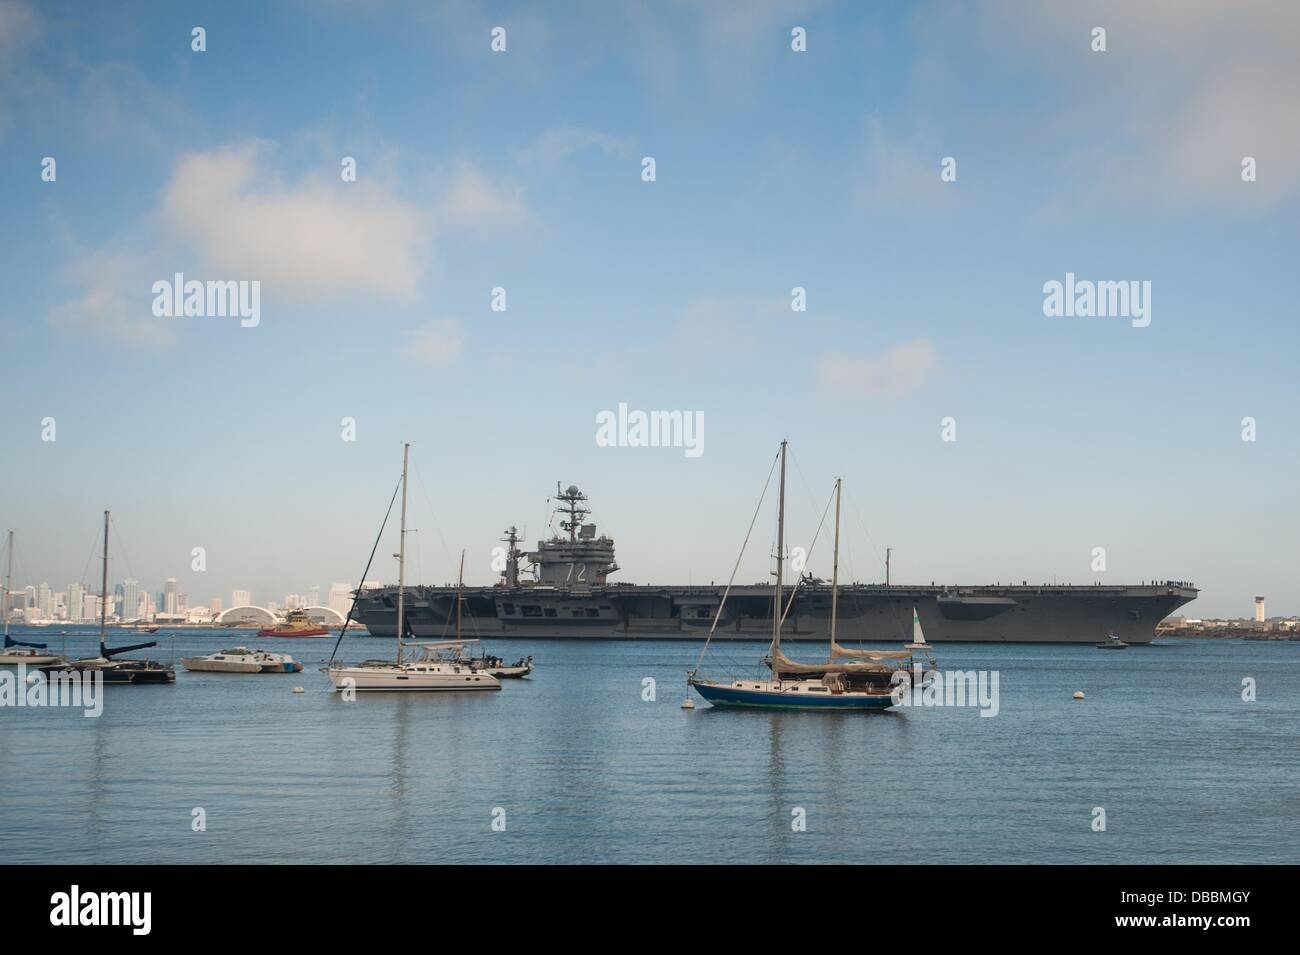 Sept. 20, 2011 - San Diego, California, United States - The USS Abraham Lincoln, the fifth Nimitz-class nuclear - Stock Image